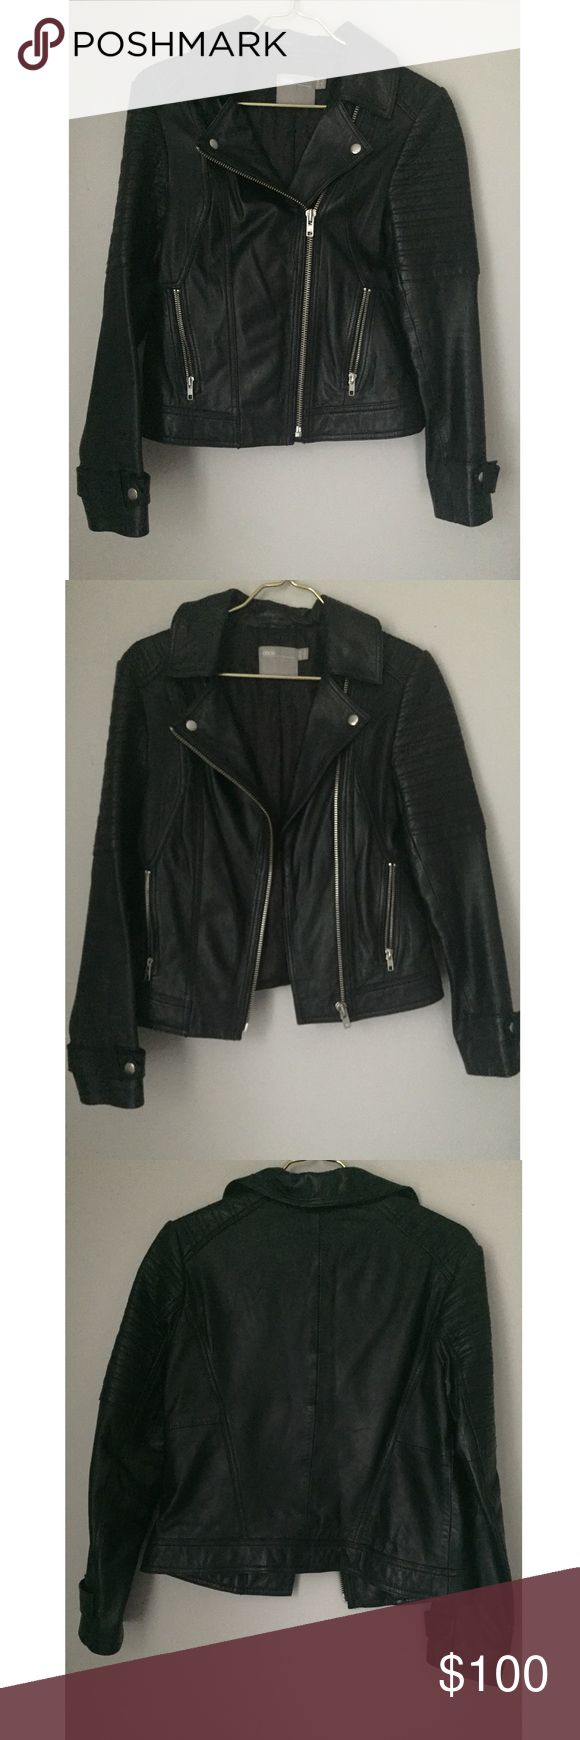 Leather Biker Jacket Leather biker jacket purchased from ASOS. Worn less than a handful of times.   NO TRADES! ASOS Jackets & Coats